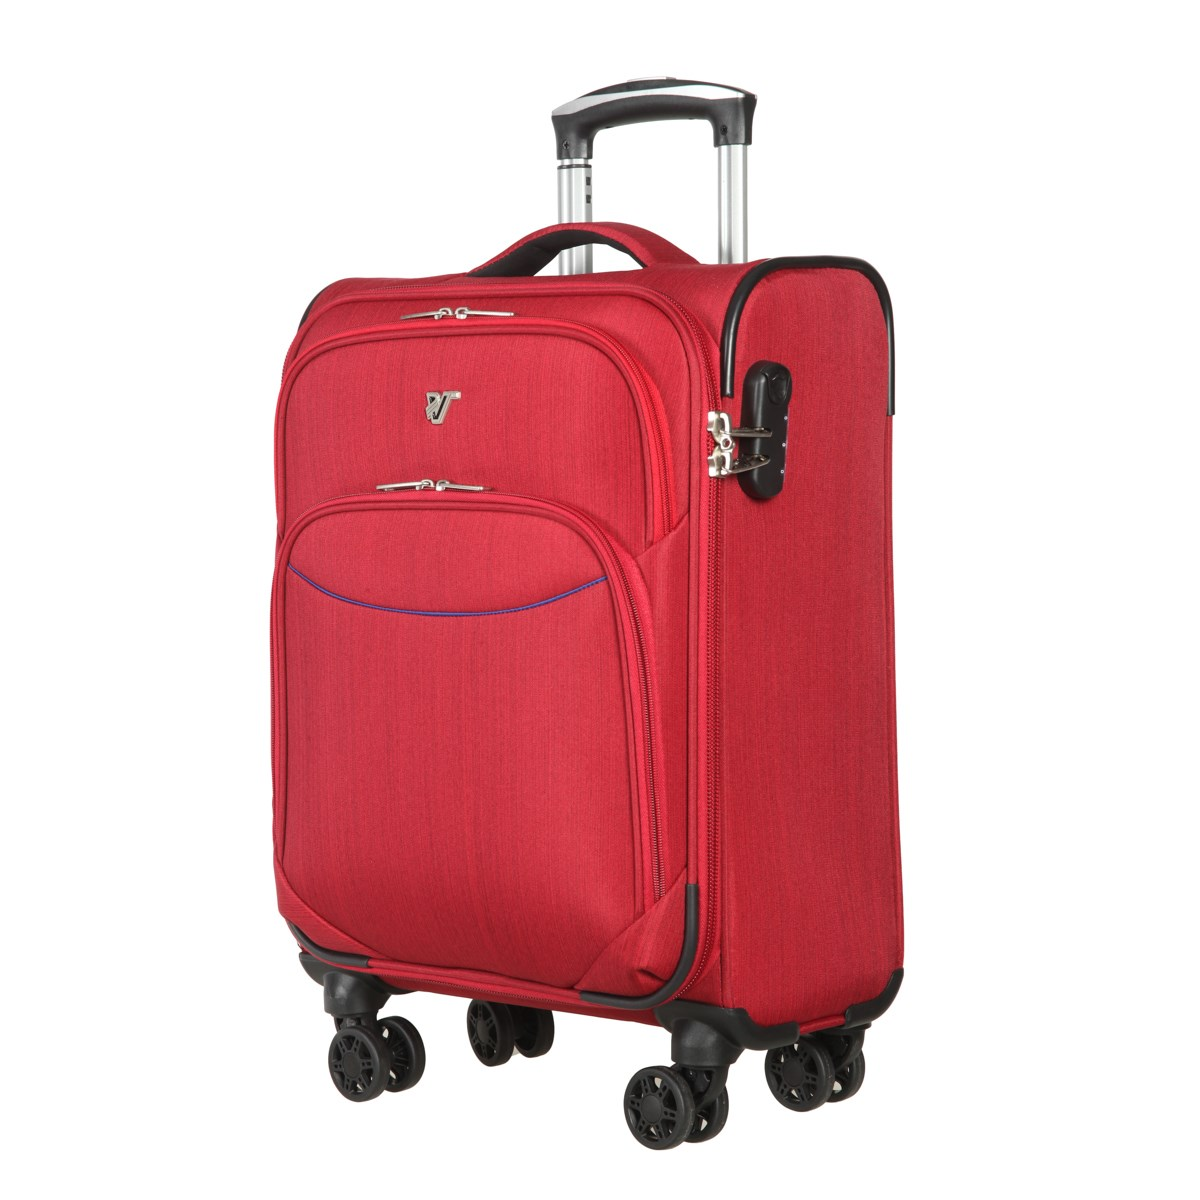 Suitcase-trolley Verage GM17026W18, 5 red